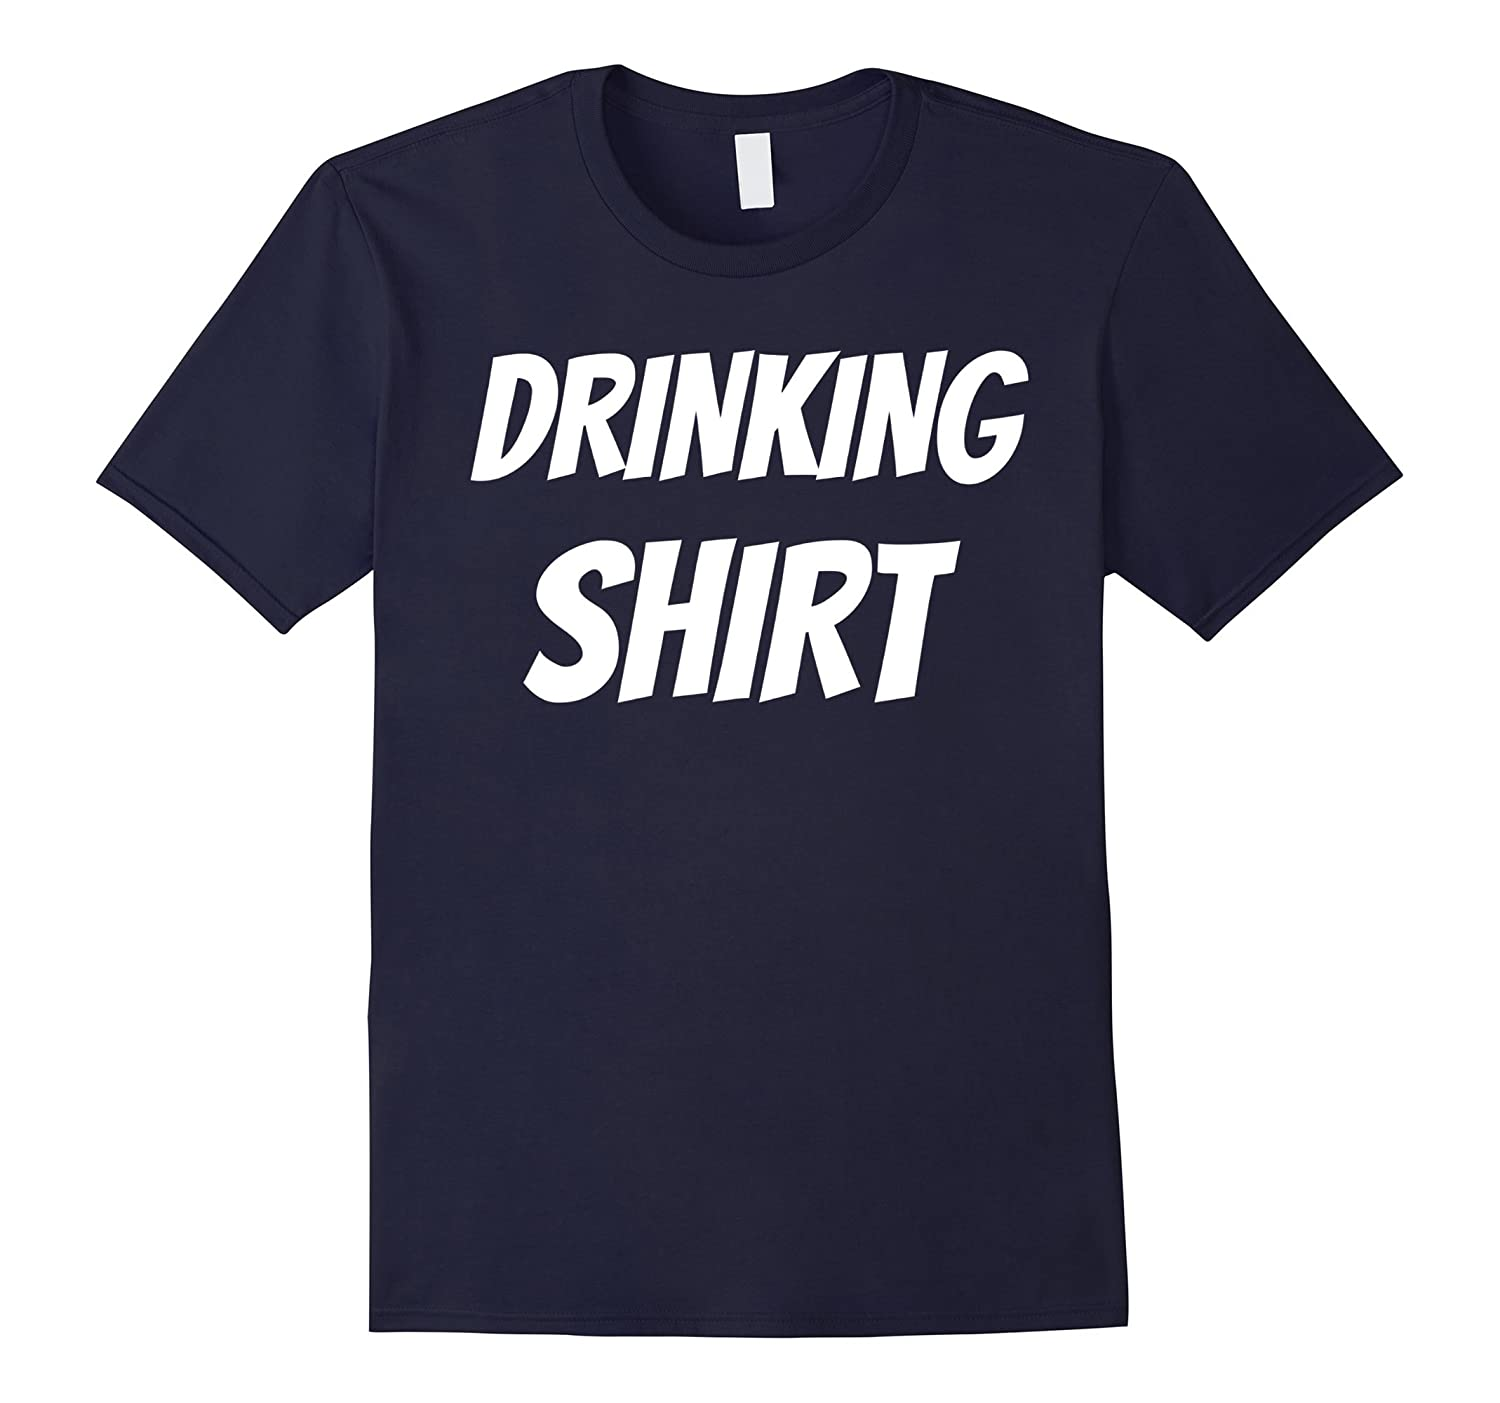 DRINKING SHIRT Tequila Beer Wine Liquor Alcohol Fun T-Shirt-Loveshirt